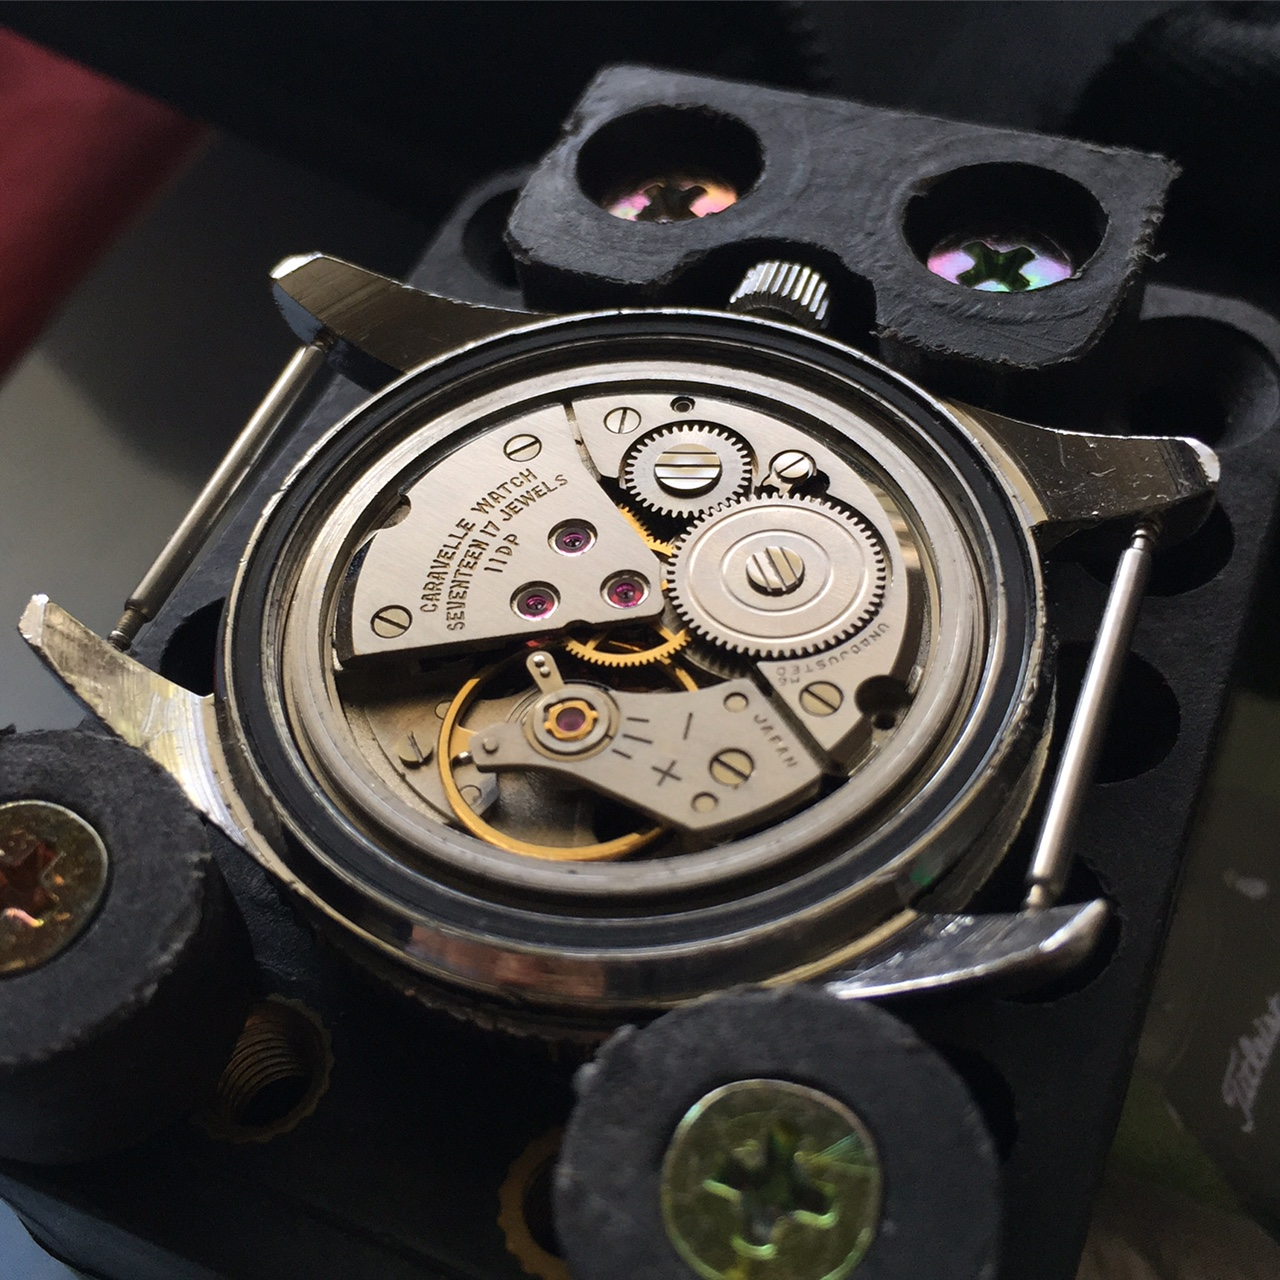 A very clean seventeen jewel, manual wind Japanese movement. The movement is super clean and gained only 2 seconds over 24 hours when left face up.